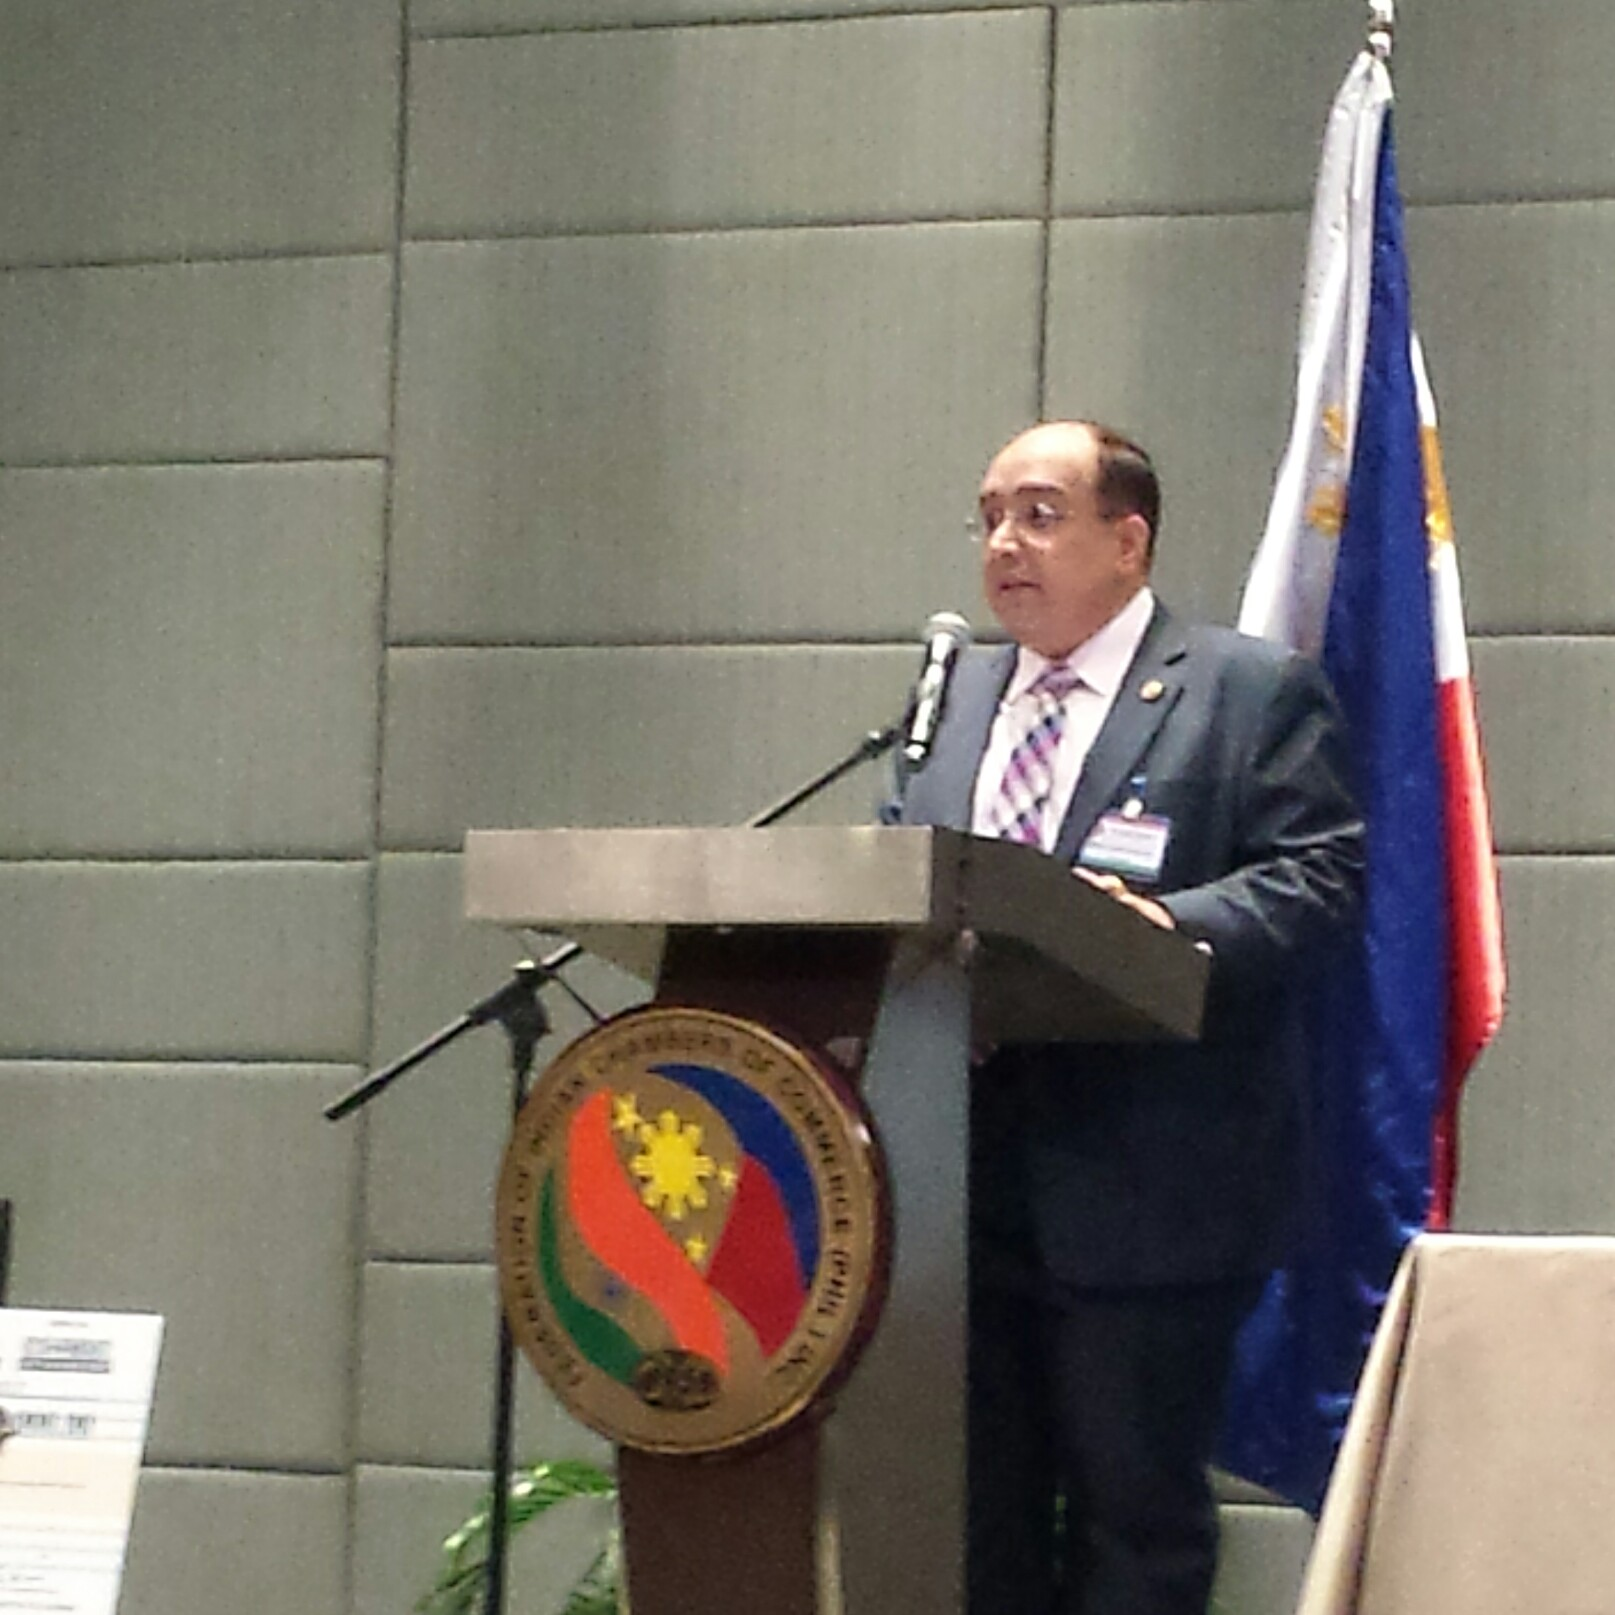 Federation of Indian Chambers of Commerce (Philippines) Inc. (FICCI) is seeking closer economic cooperation between Manila and New Delhi, its president Rex Daryanani has said. (PNA Photo)